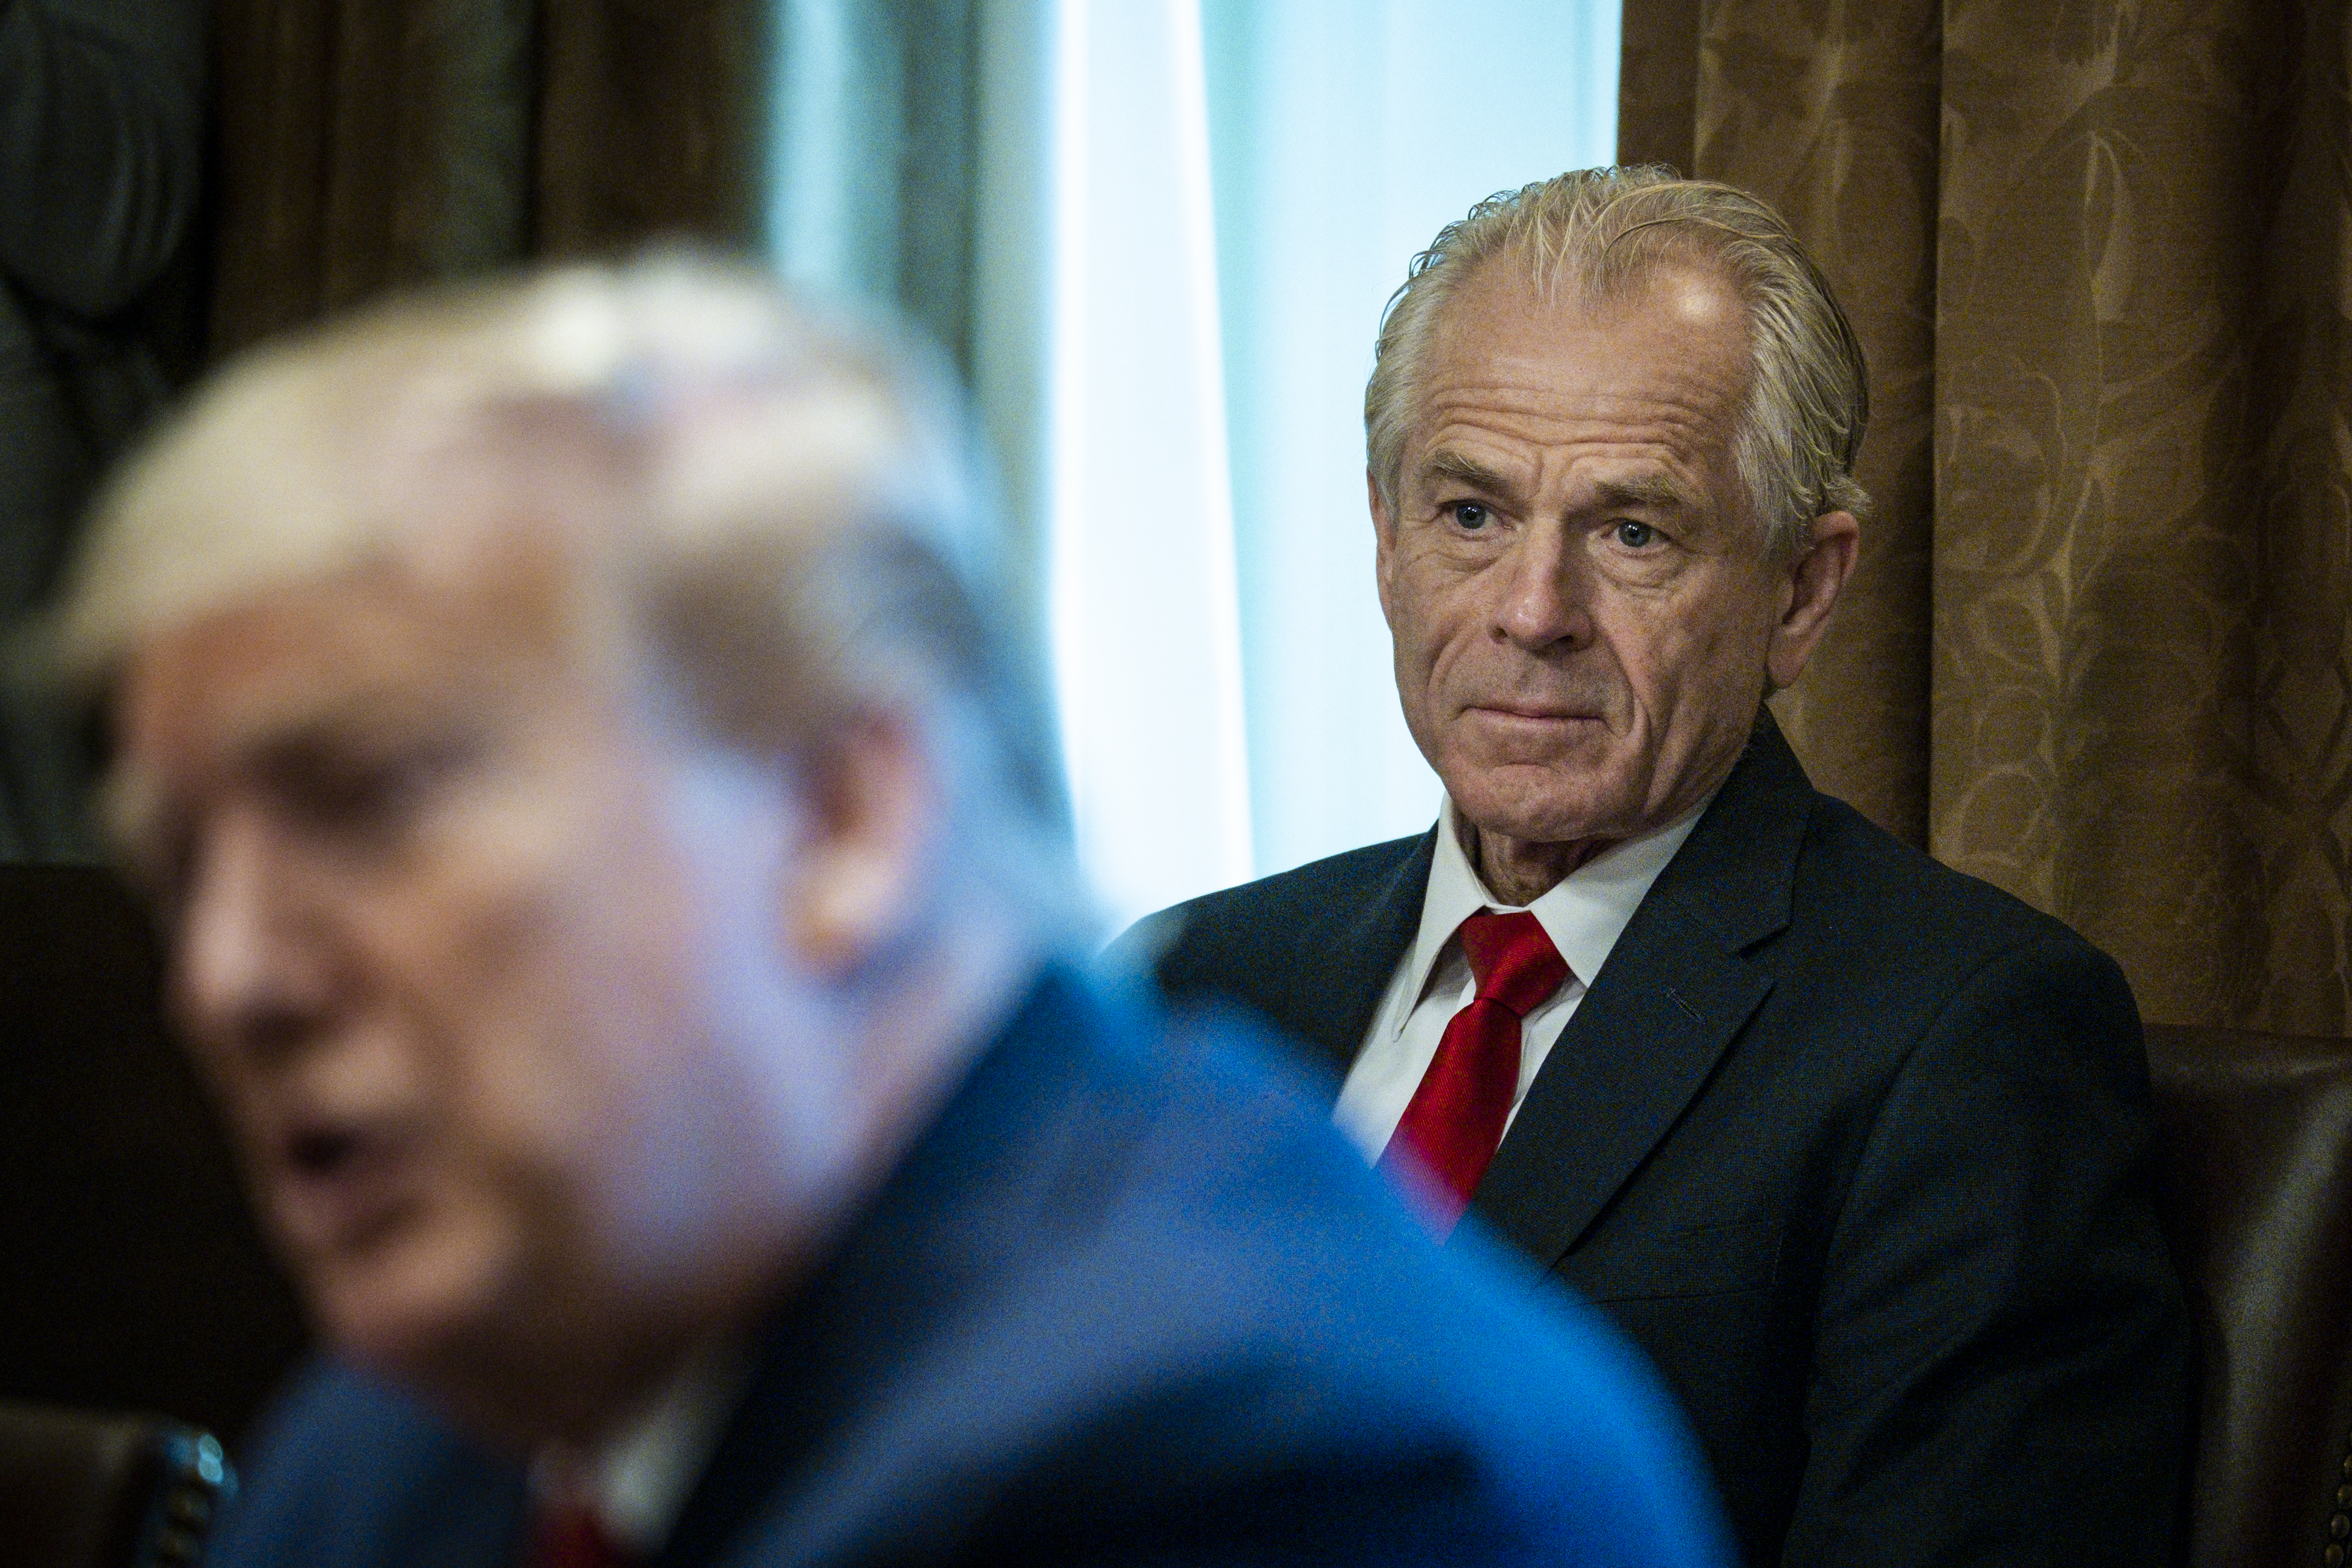 WASHINGTON, DC - MARCH 29: Director of the National Trade Council Peter Navarro looks on as President Donald Trump meets with supply chain distributors in reference to the COVID-19 coronavirus pandemic, in the Cabinet Room in the West Wing at the White House on Sunday, March 29, 2020. (Photo by Pete Marovich-Pool/Getty Images)